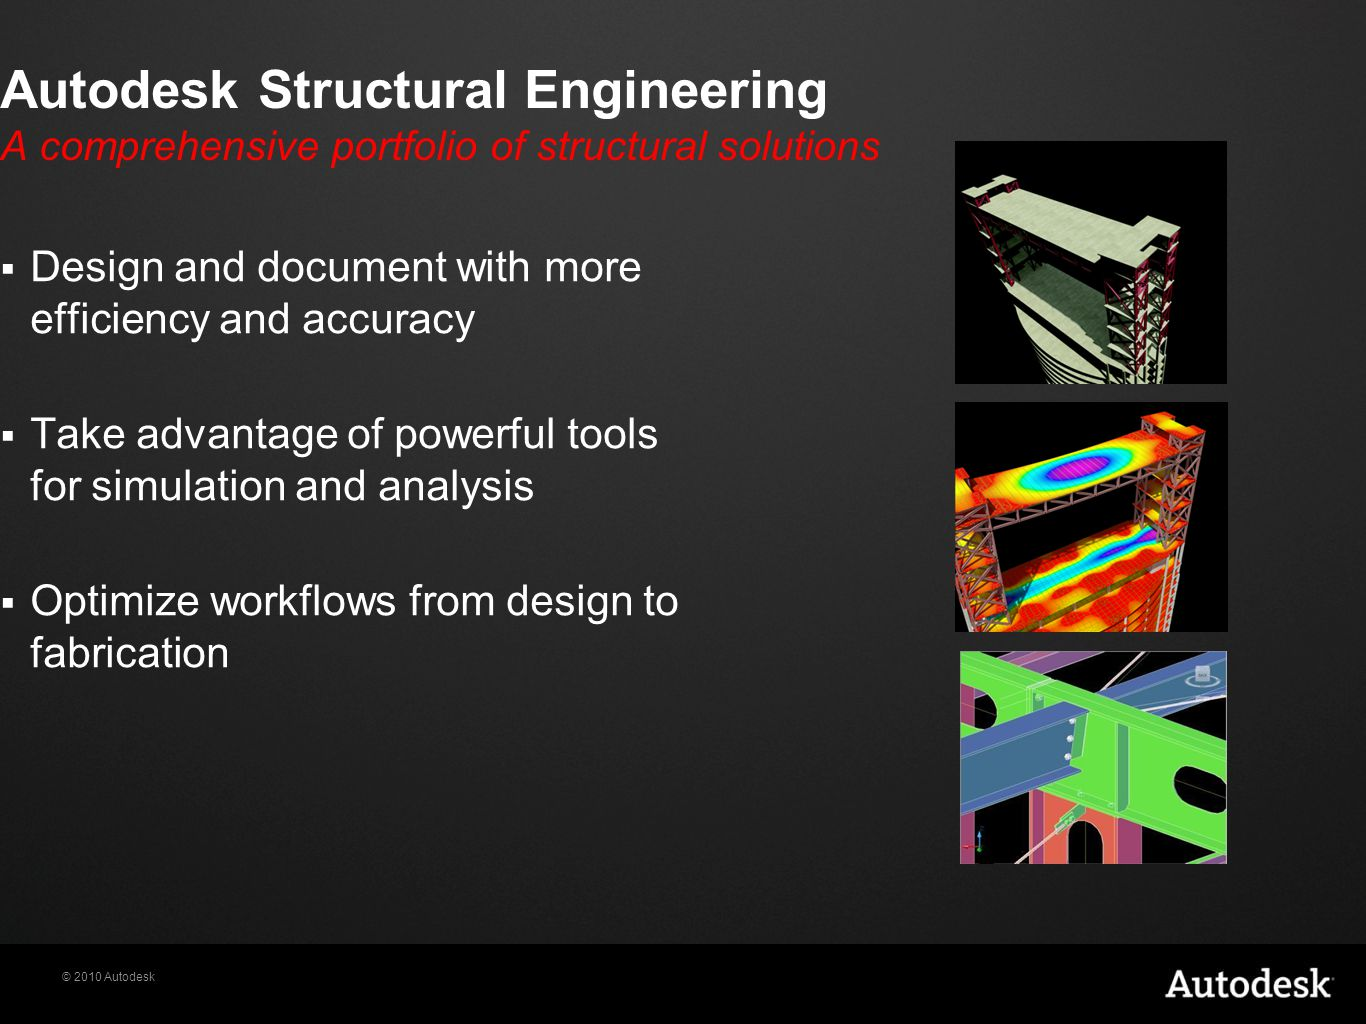 © 2010 Autodesk Autodesk Structural Engineering A comprehensive portfolio of structural solutions  Design and document with more efficiency and accuracy  Take advantage of powerful tools for simulation and analysis  Optimize workflows from design to fabrication